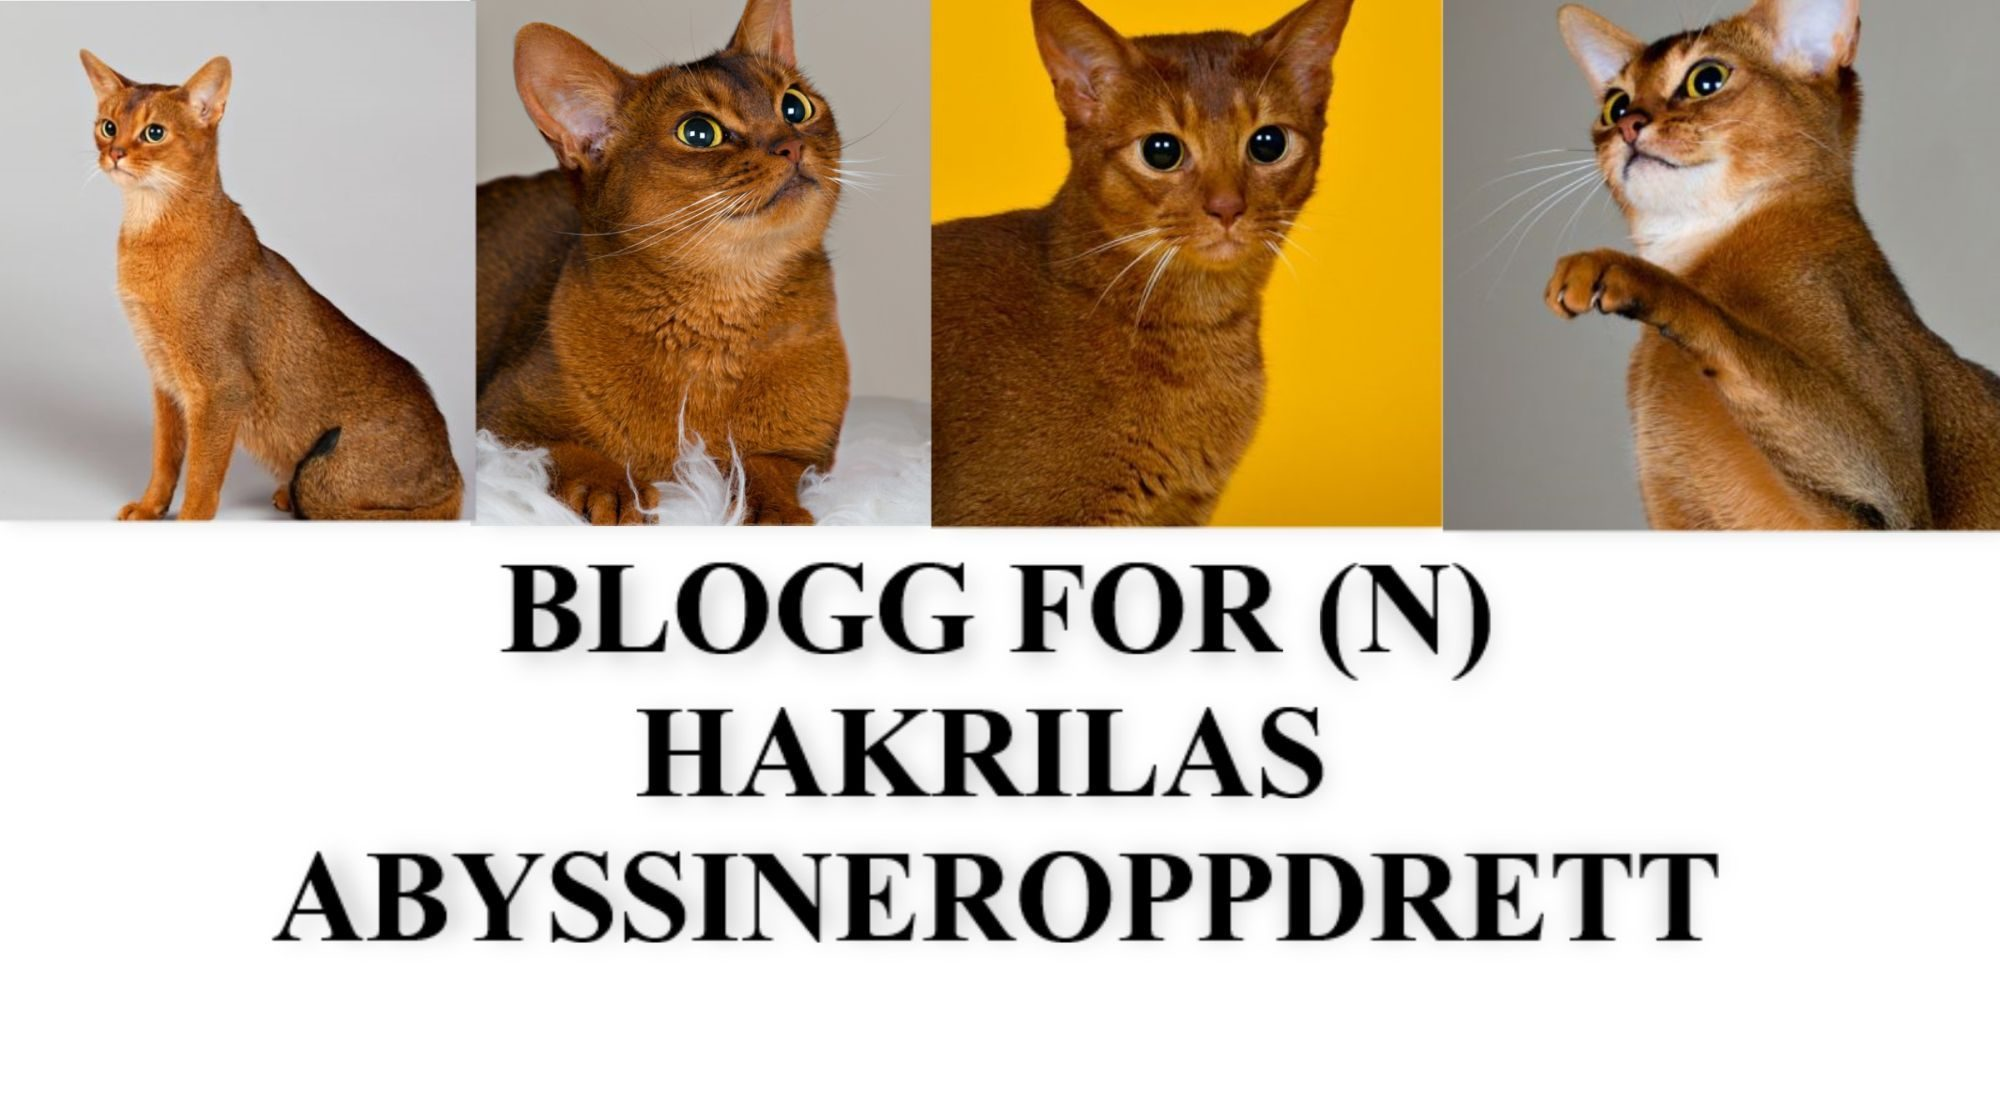 BLOGG FOR